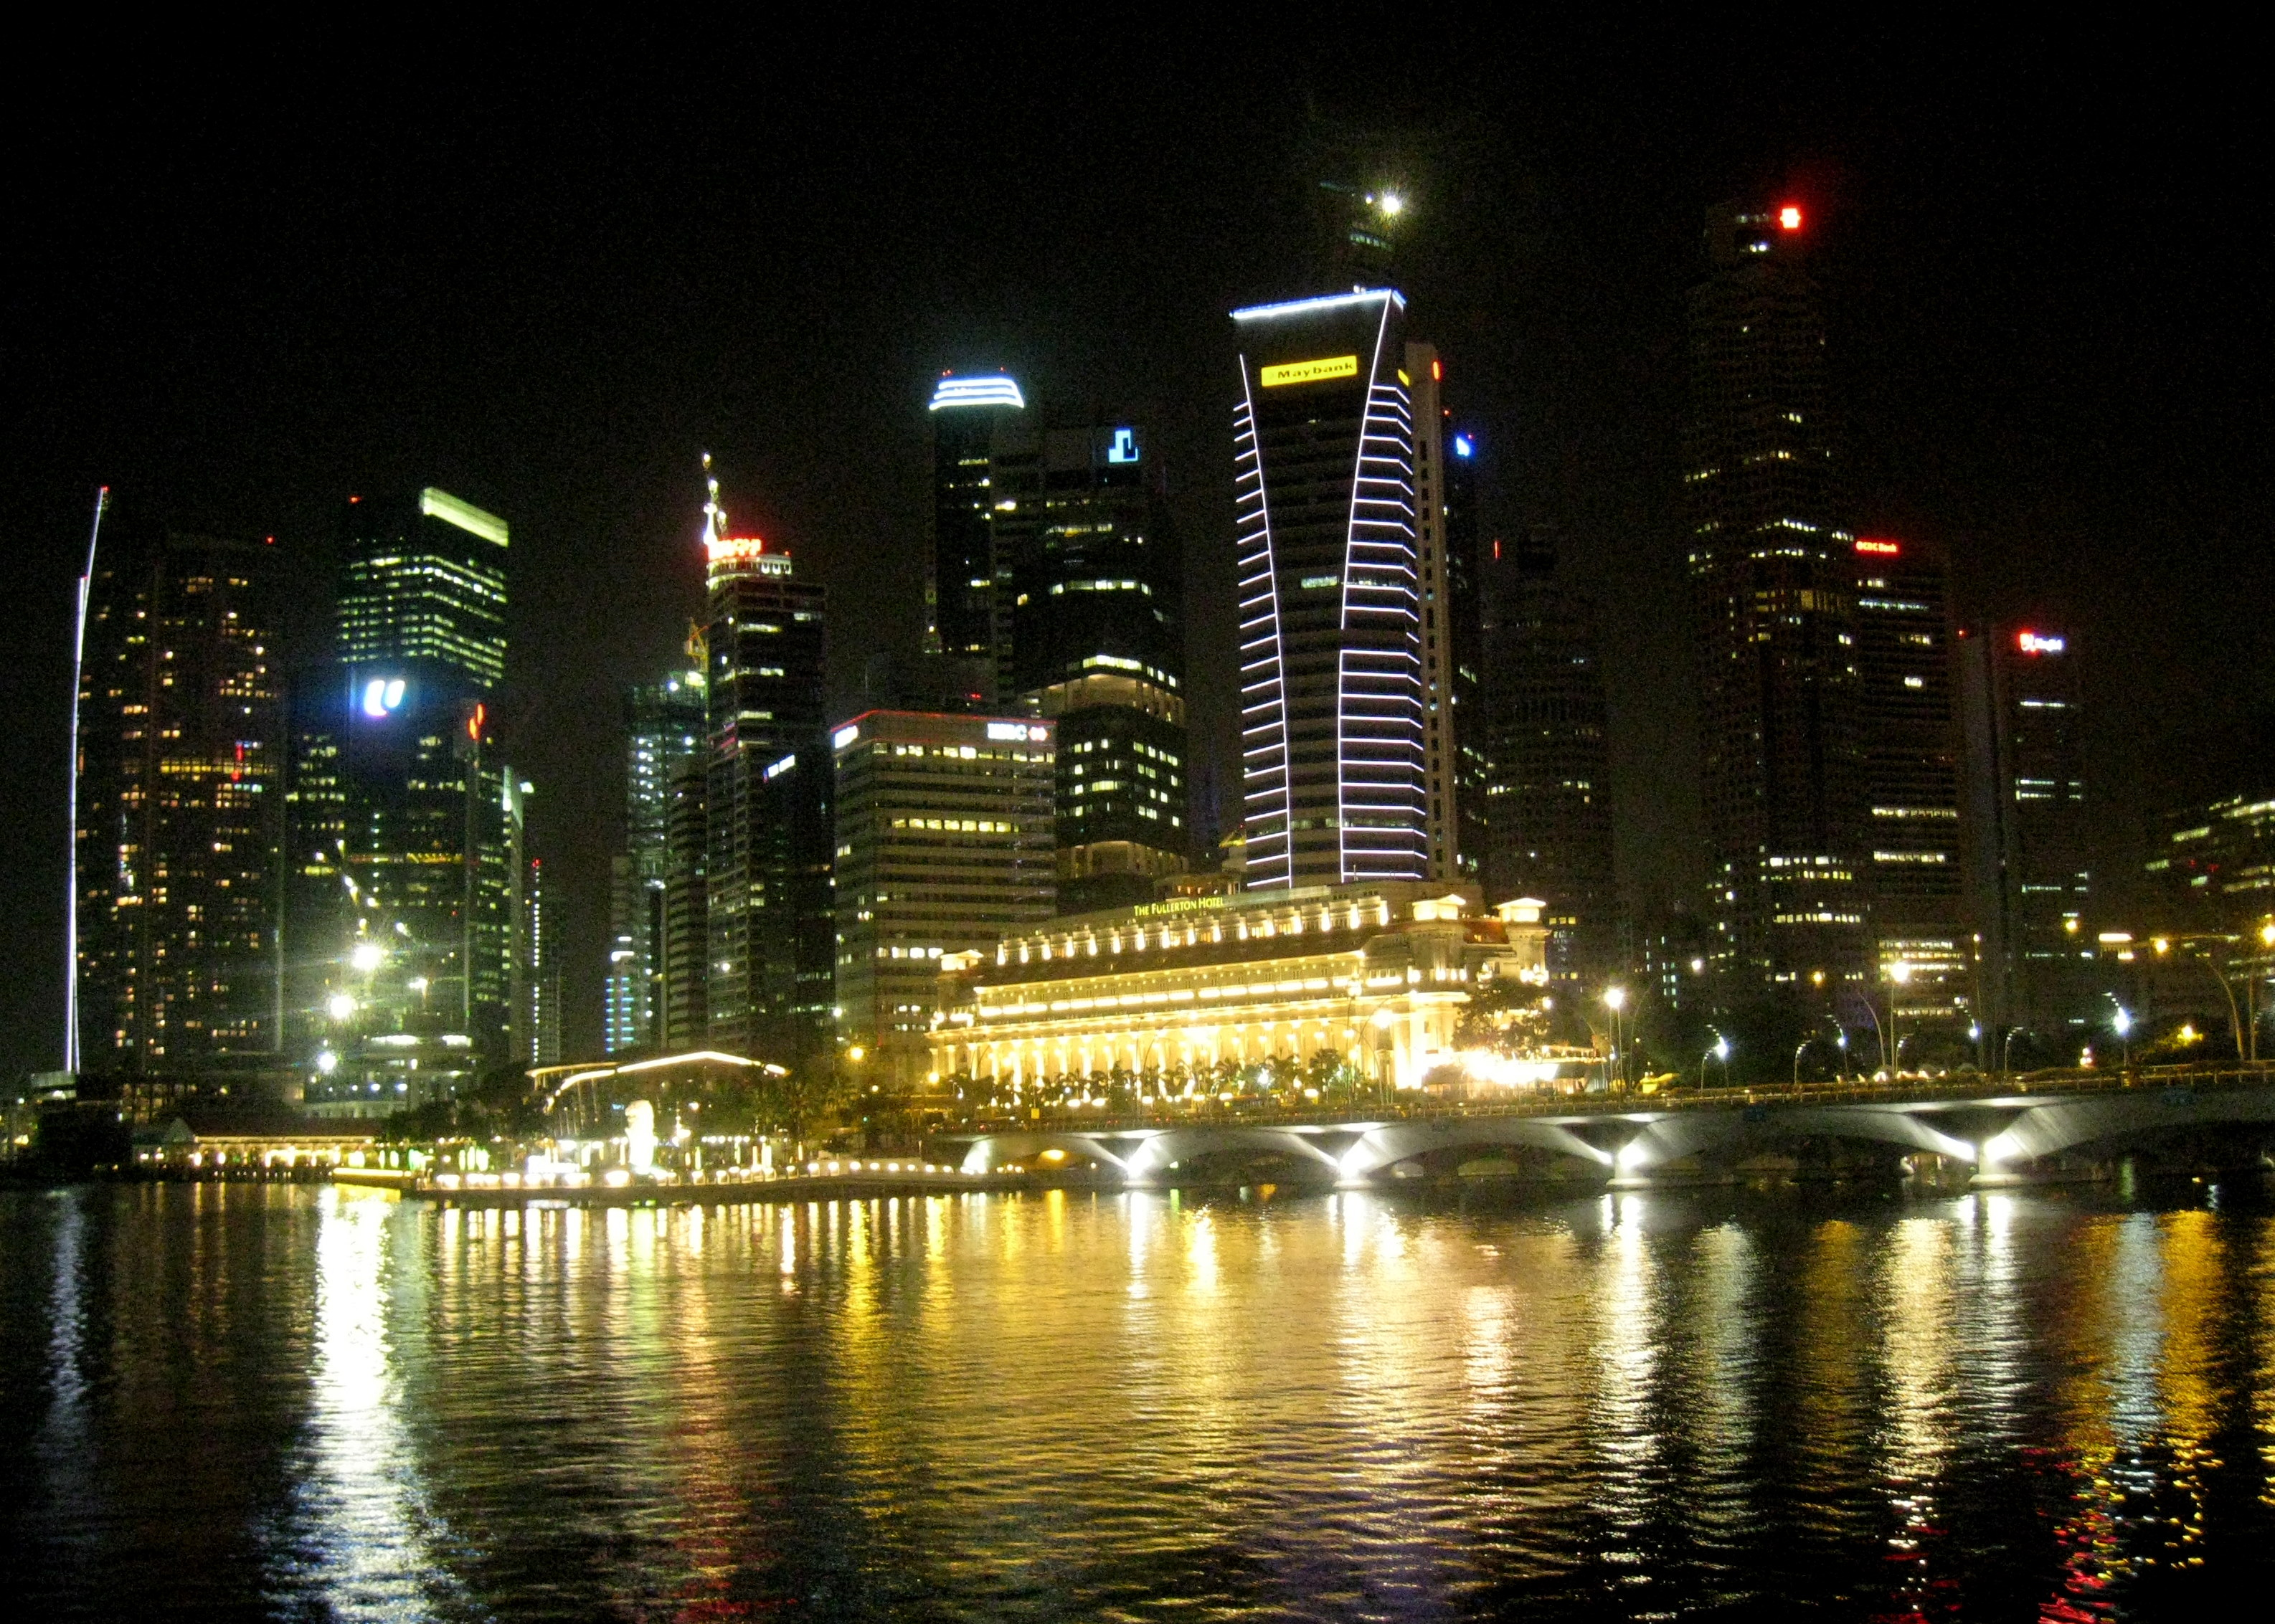 The singapore skyline at night from the esplanade